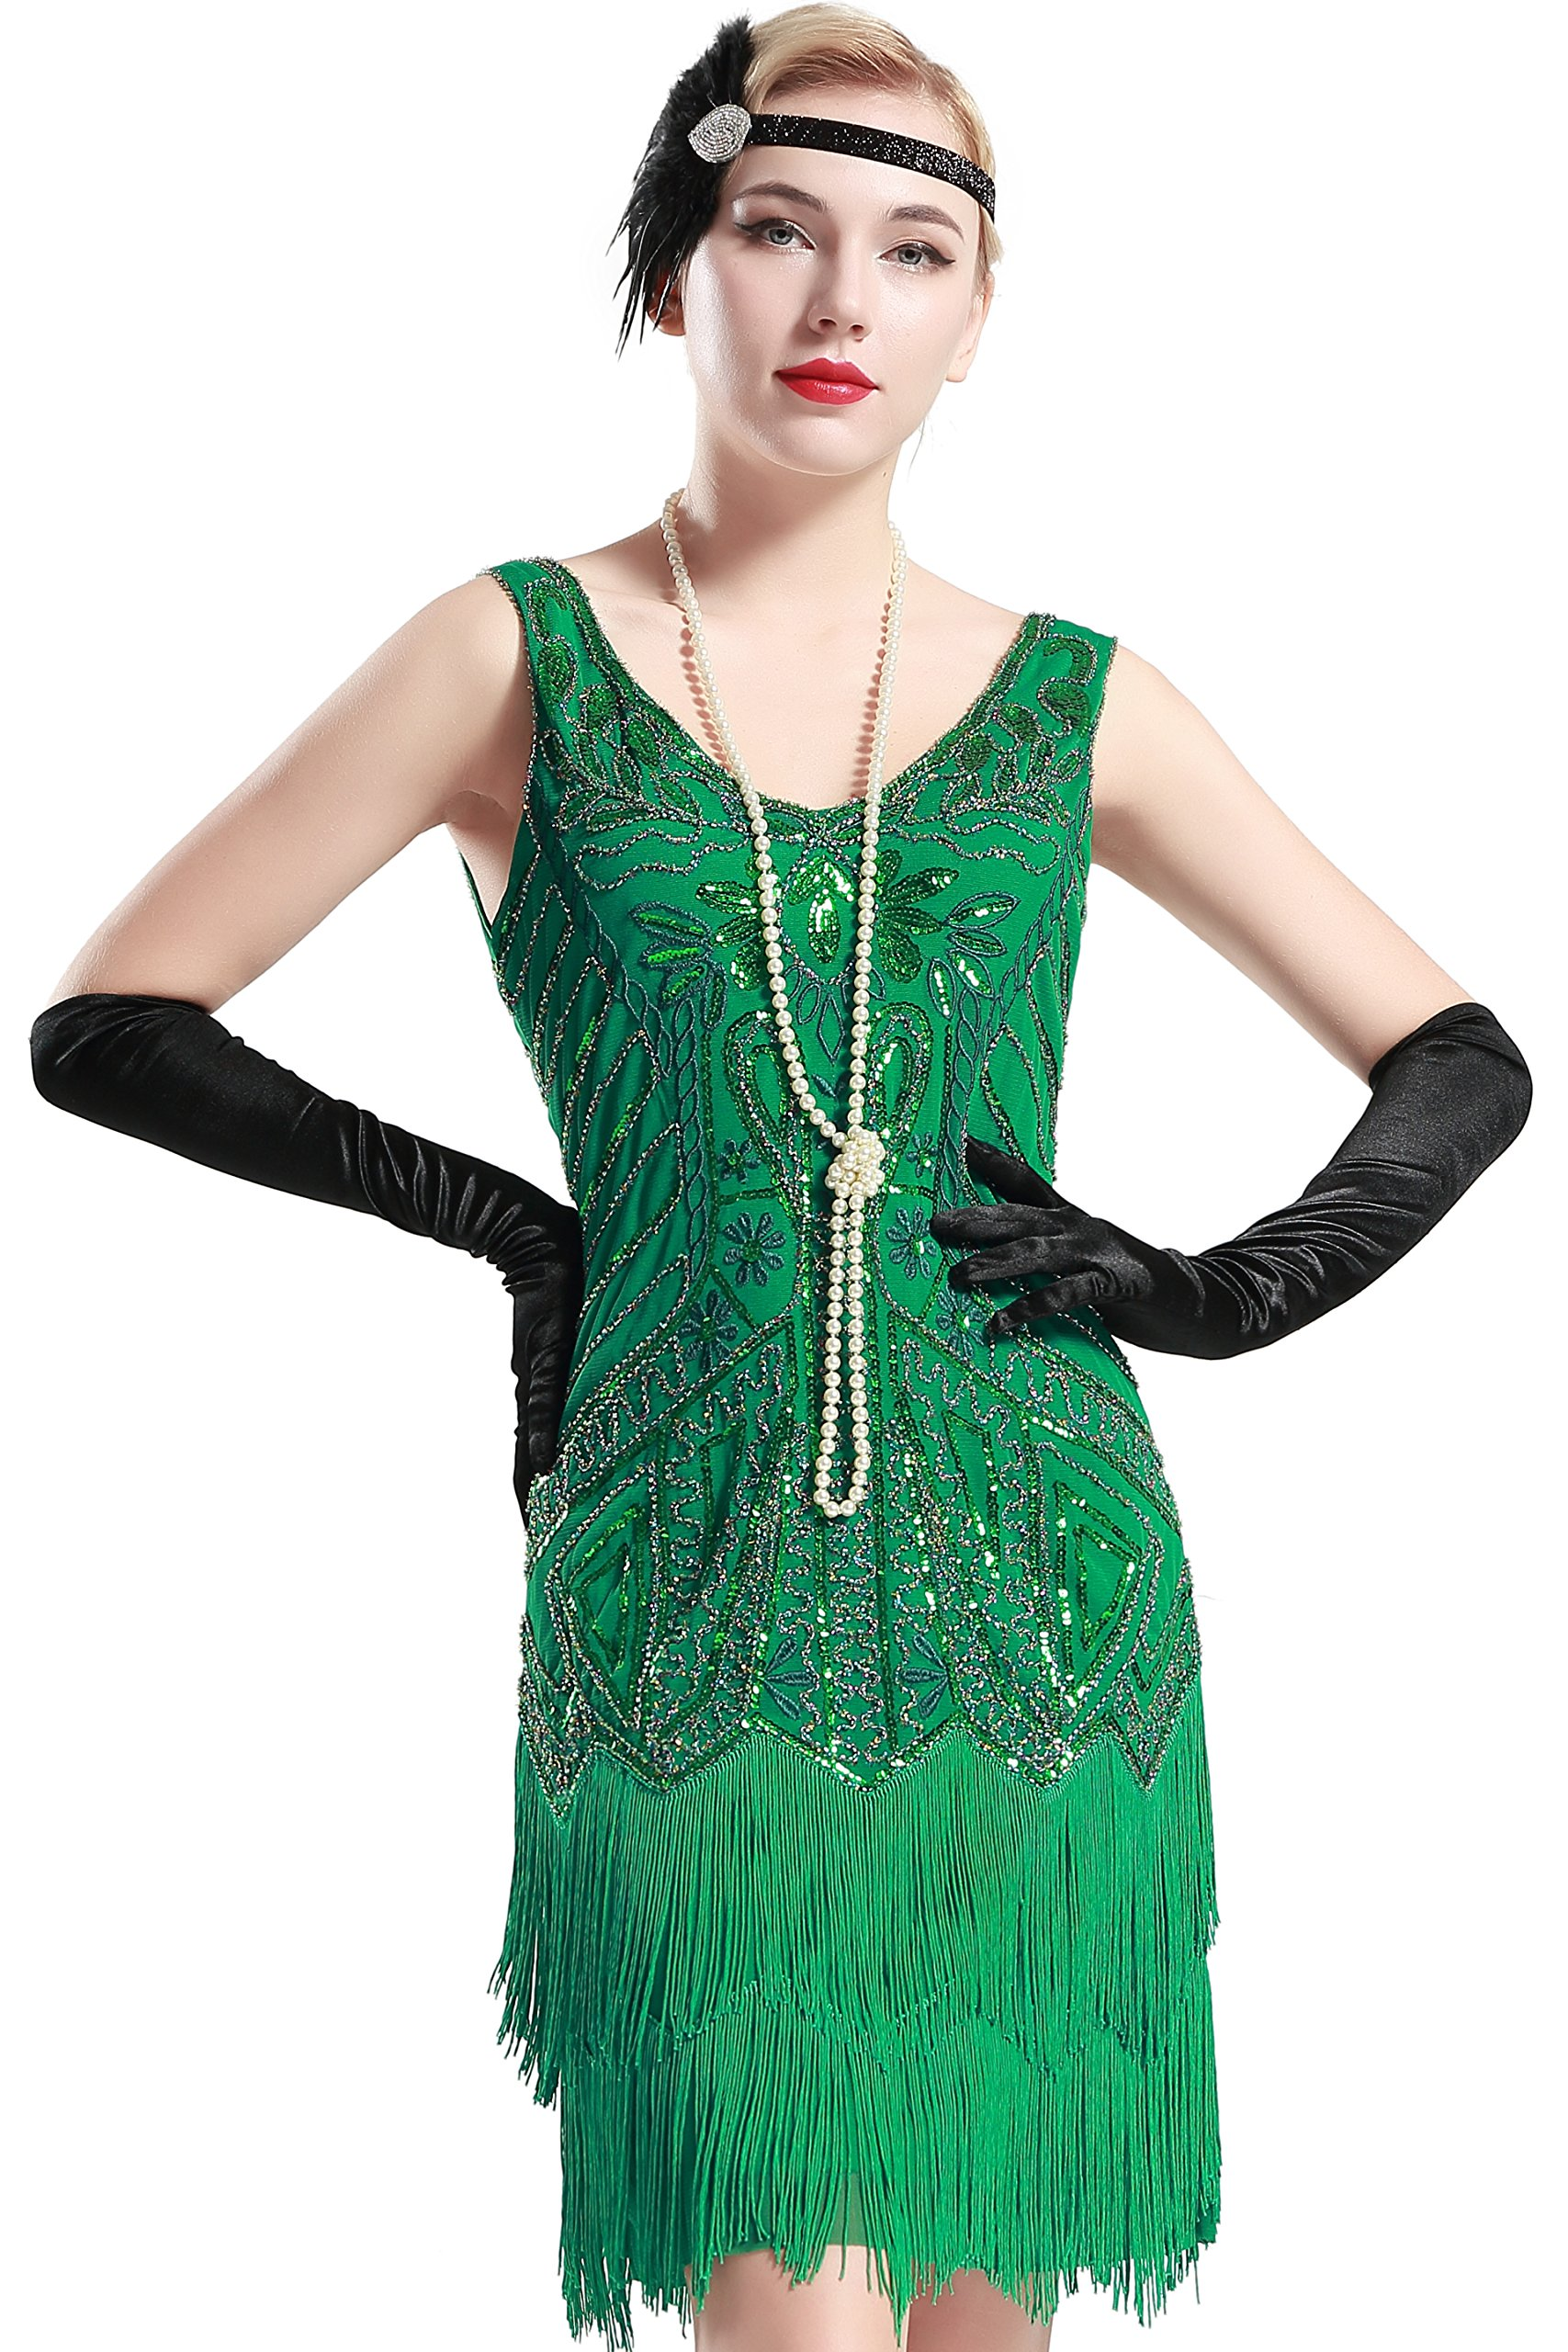 Womens Flapper Dresses 1920s V Neck Beaded Costume Fringed Sequin Great Gatsby Dress Evening Party Cocktail Dress